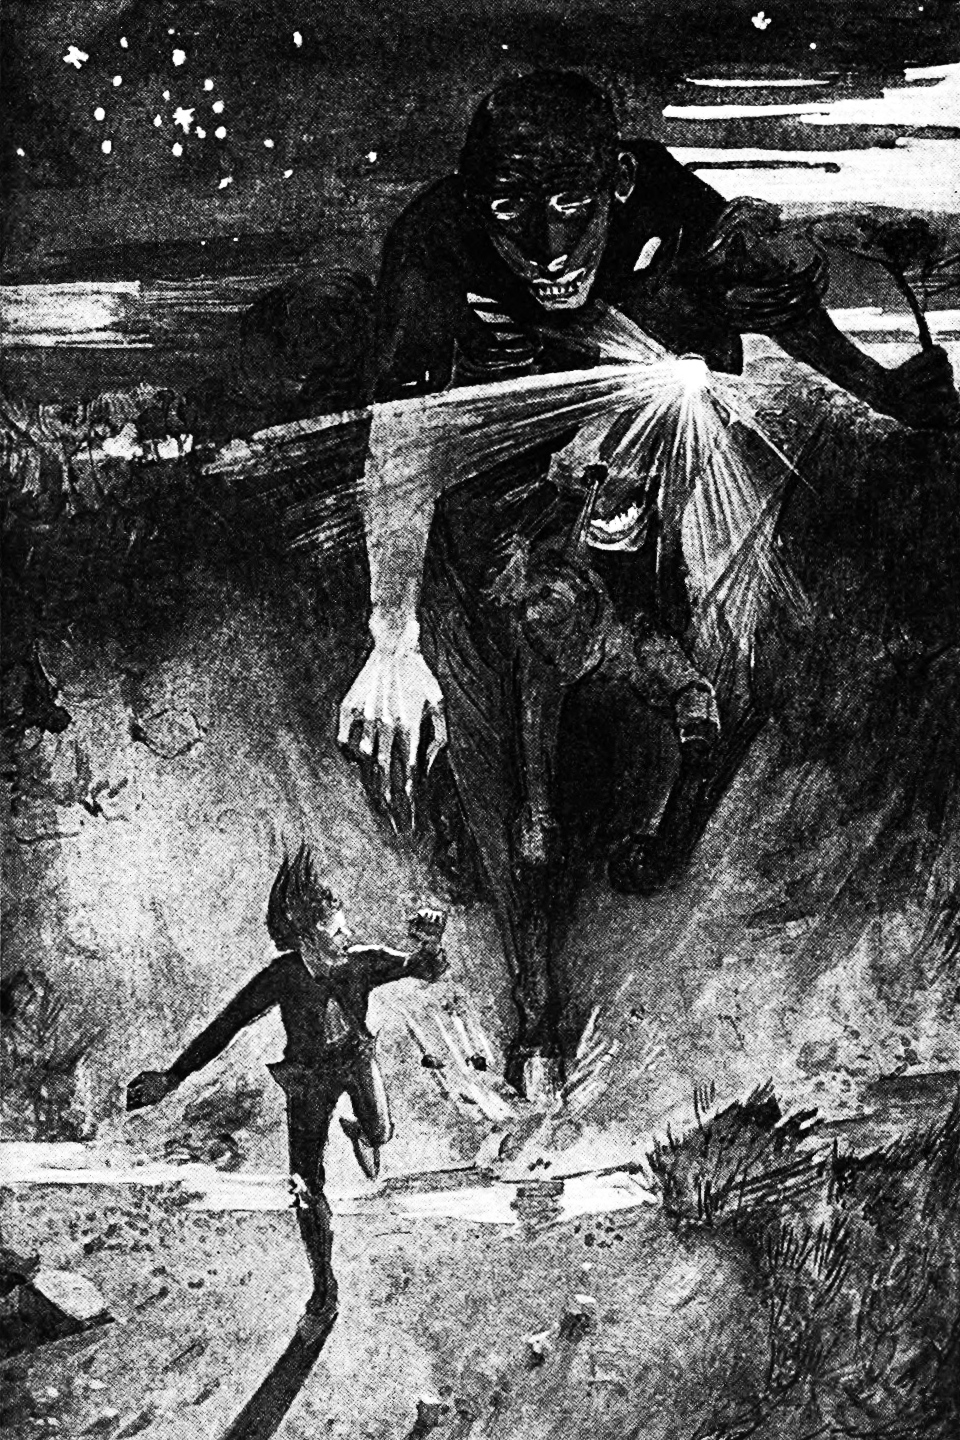 Douglas-Scottish_FFT(1901)-p162-Nuckalavee-illustr-J_Torrance_(cropped).jpg